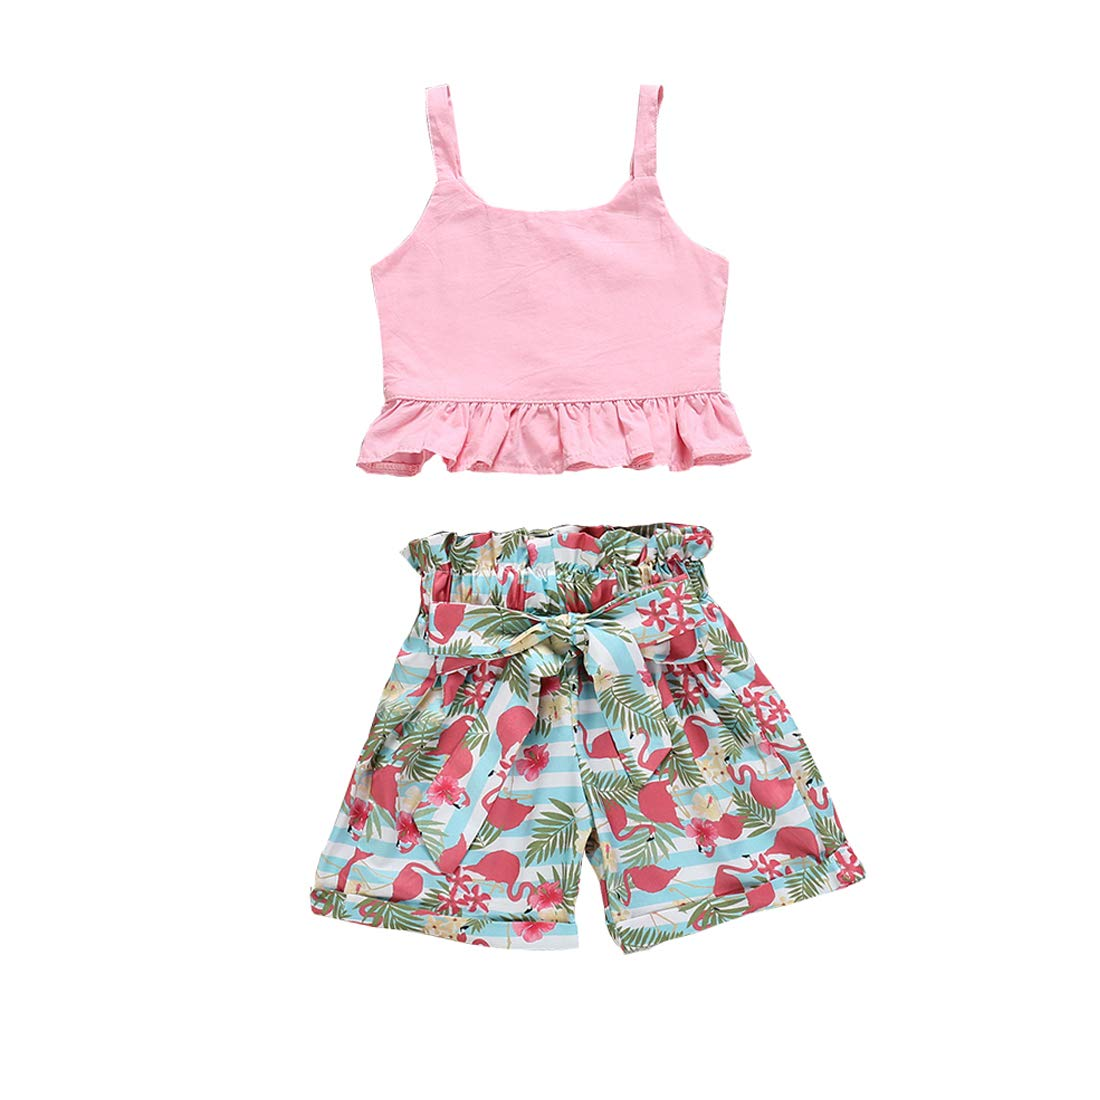 2 Pcs Toddler Baby Girl Summer Outfits,Ruffle Off Shoulder Crop Tops,Floral Wide Leg Pants with Bowknot Belt